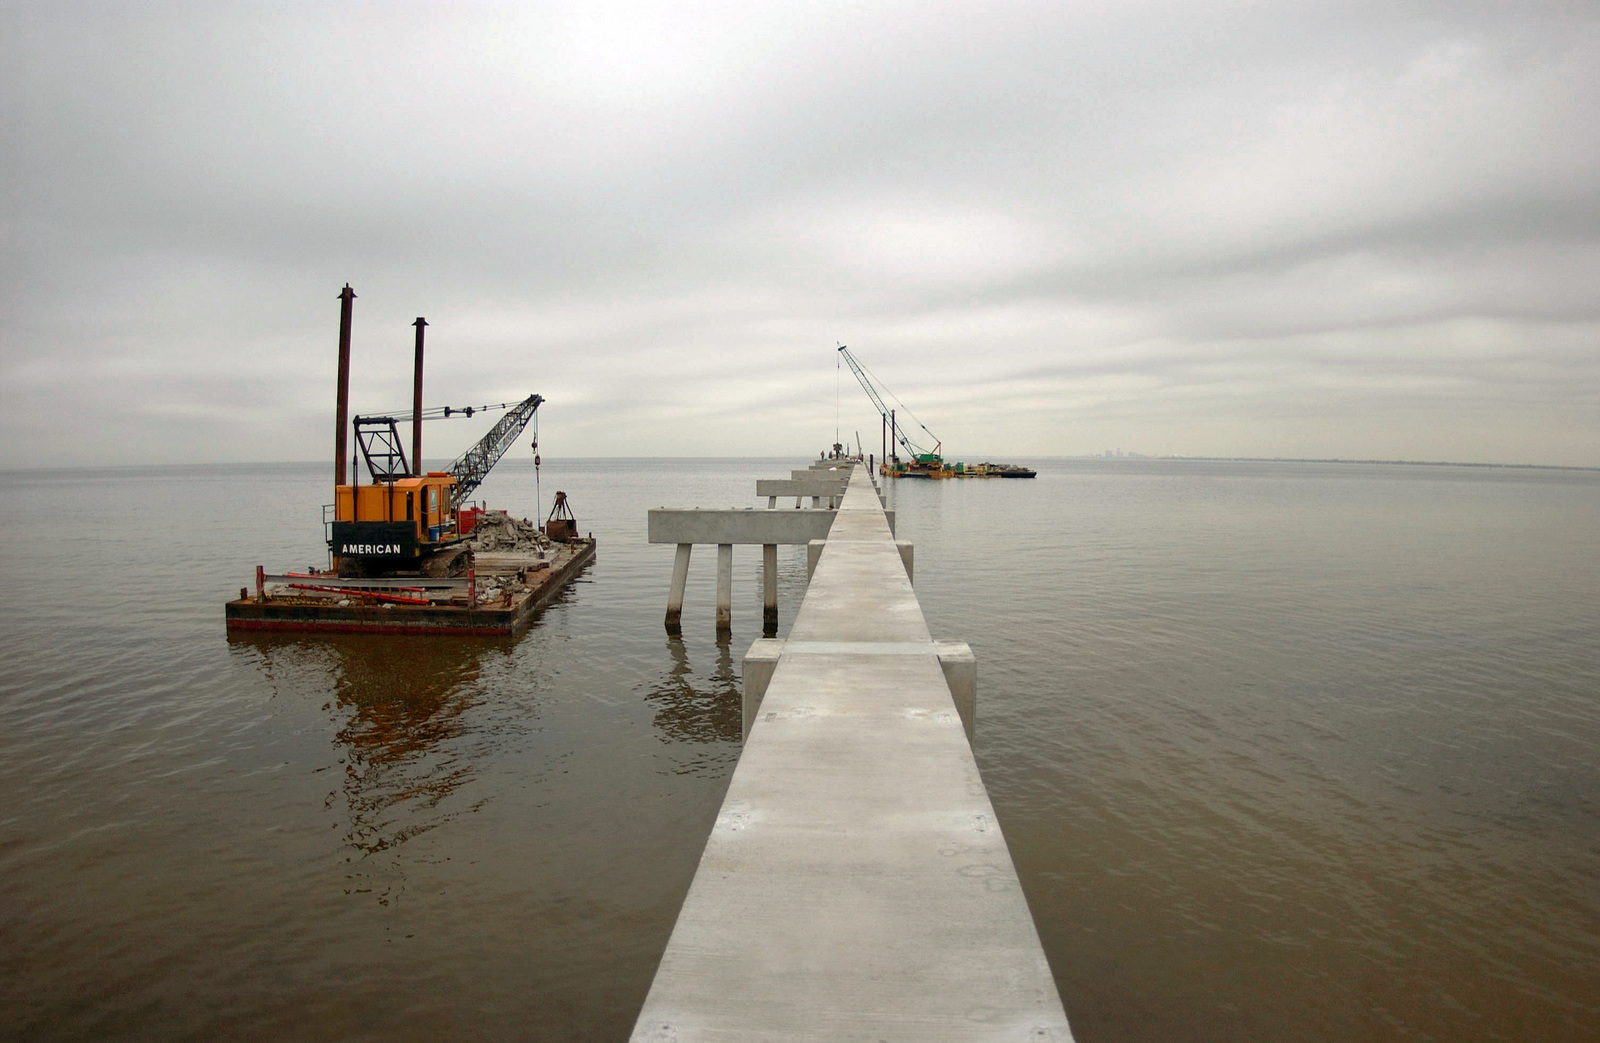 Construction is underway at the runway 04 approach lights